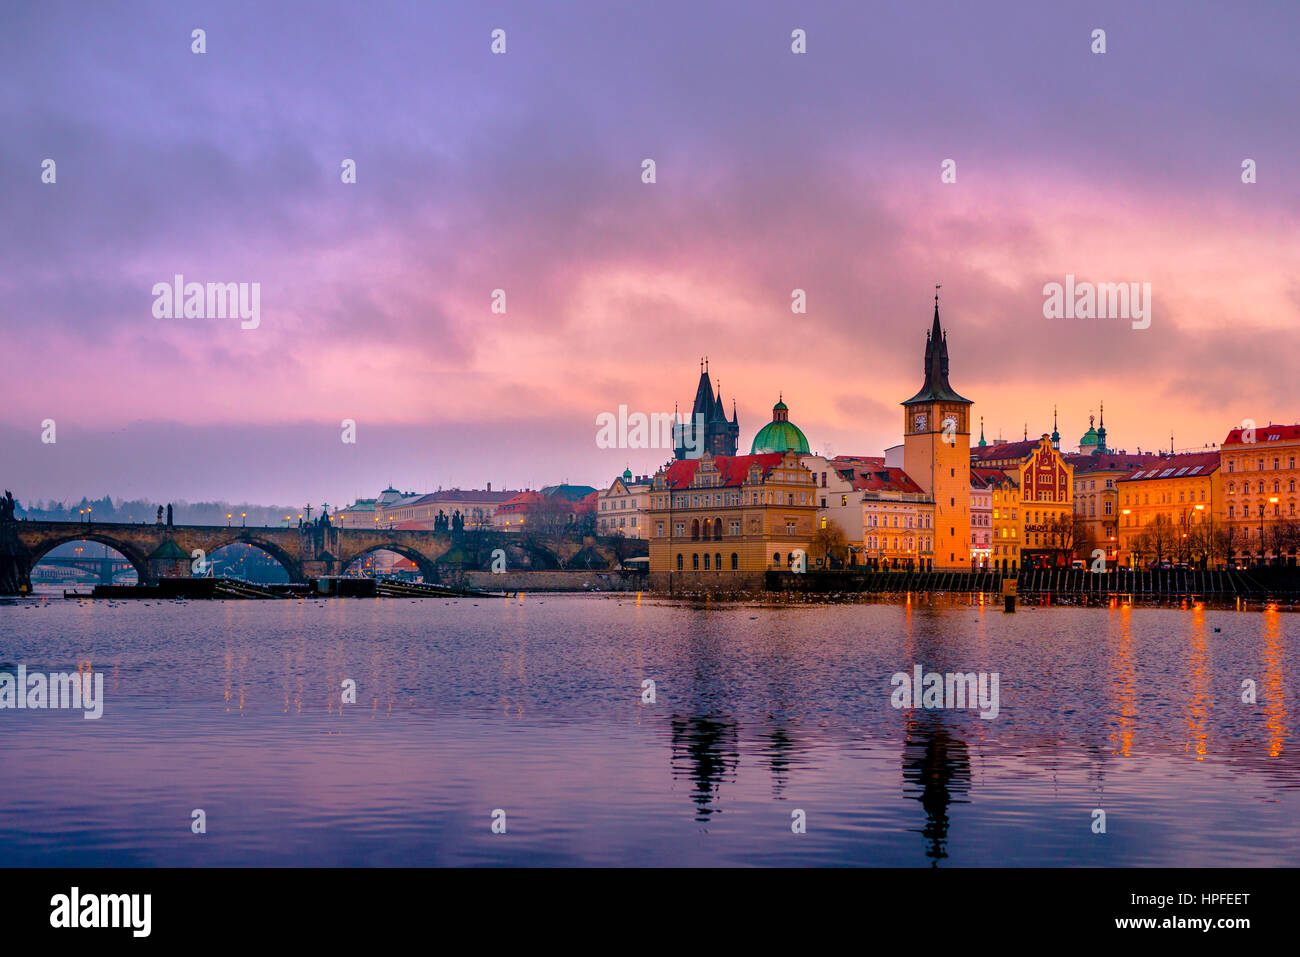 Vltava, Charles Bridge, Bridge Tower, sunrise, historic centre, Prague, Bohemia, Czech Republic - Stock Image